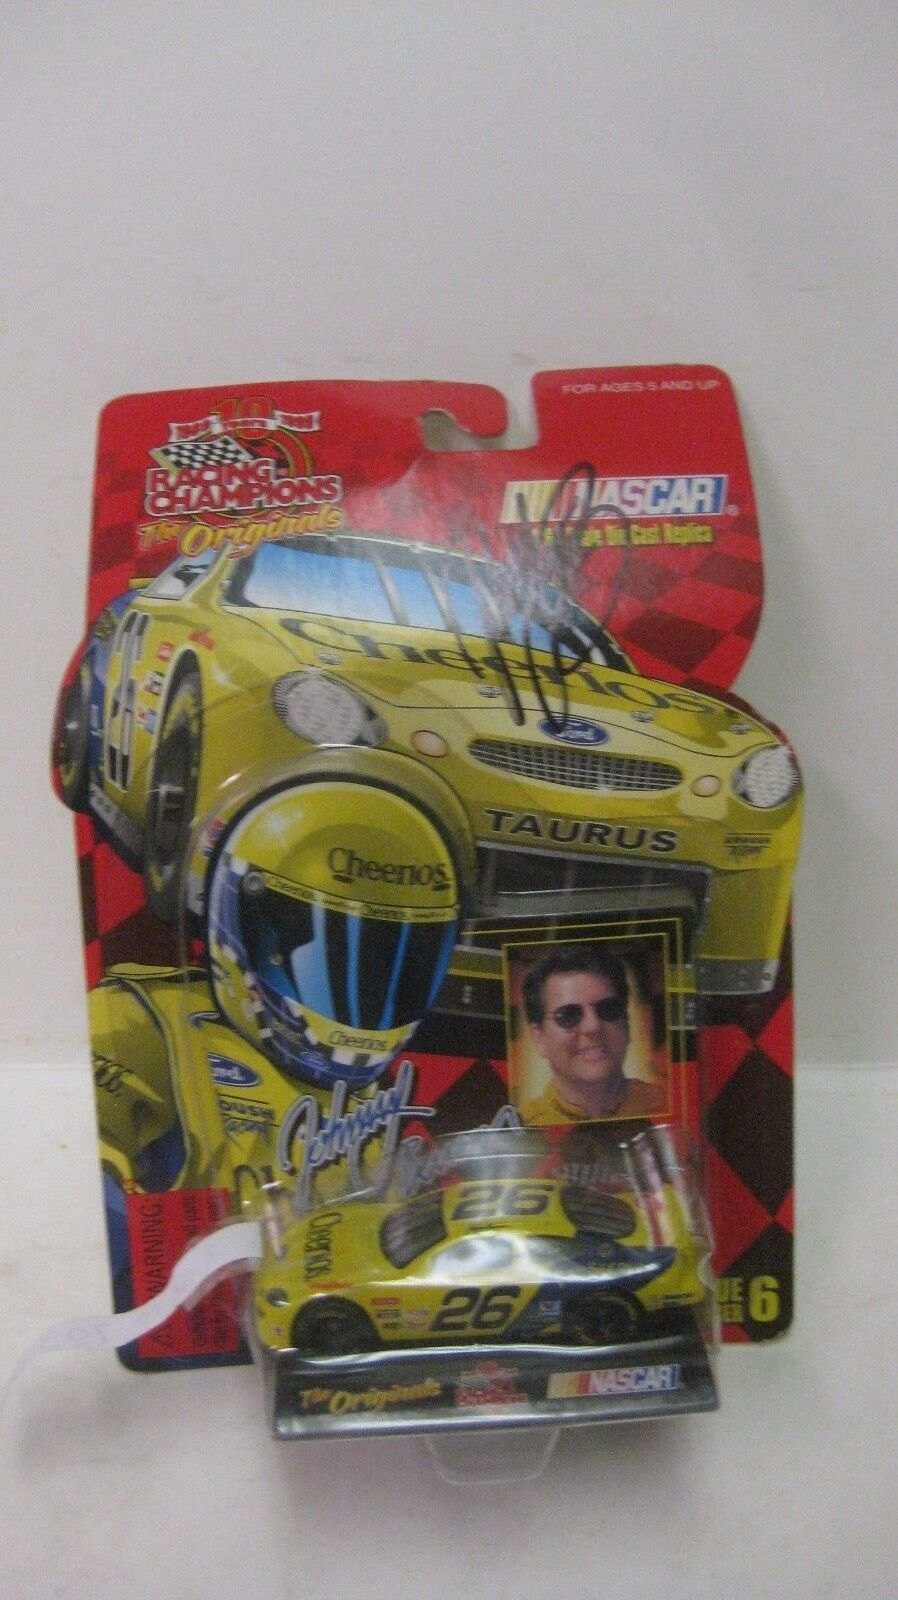 Raro Nascar The Originals Johnny Benson Autografato Ford 1 64 Pressofuso Nuovo